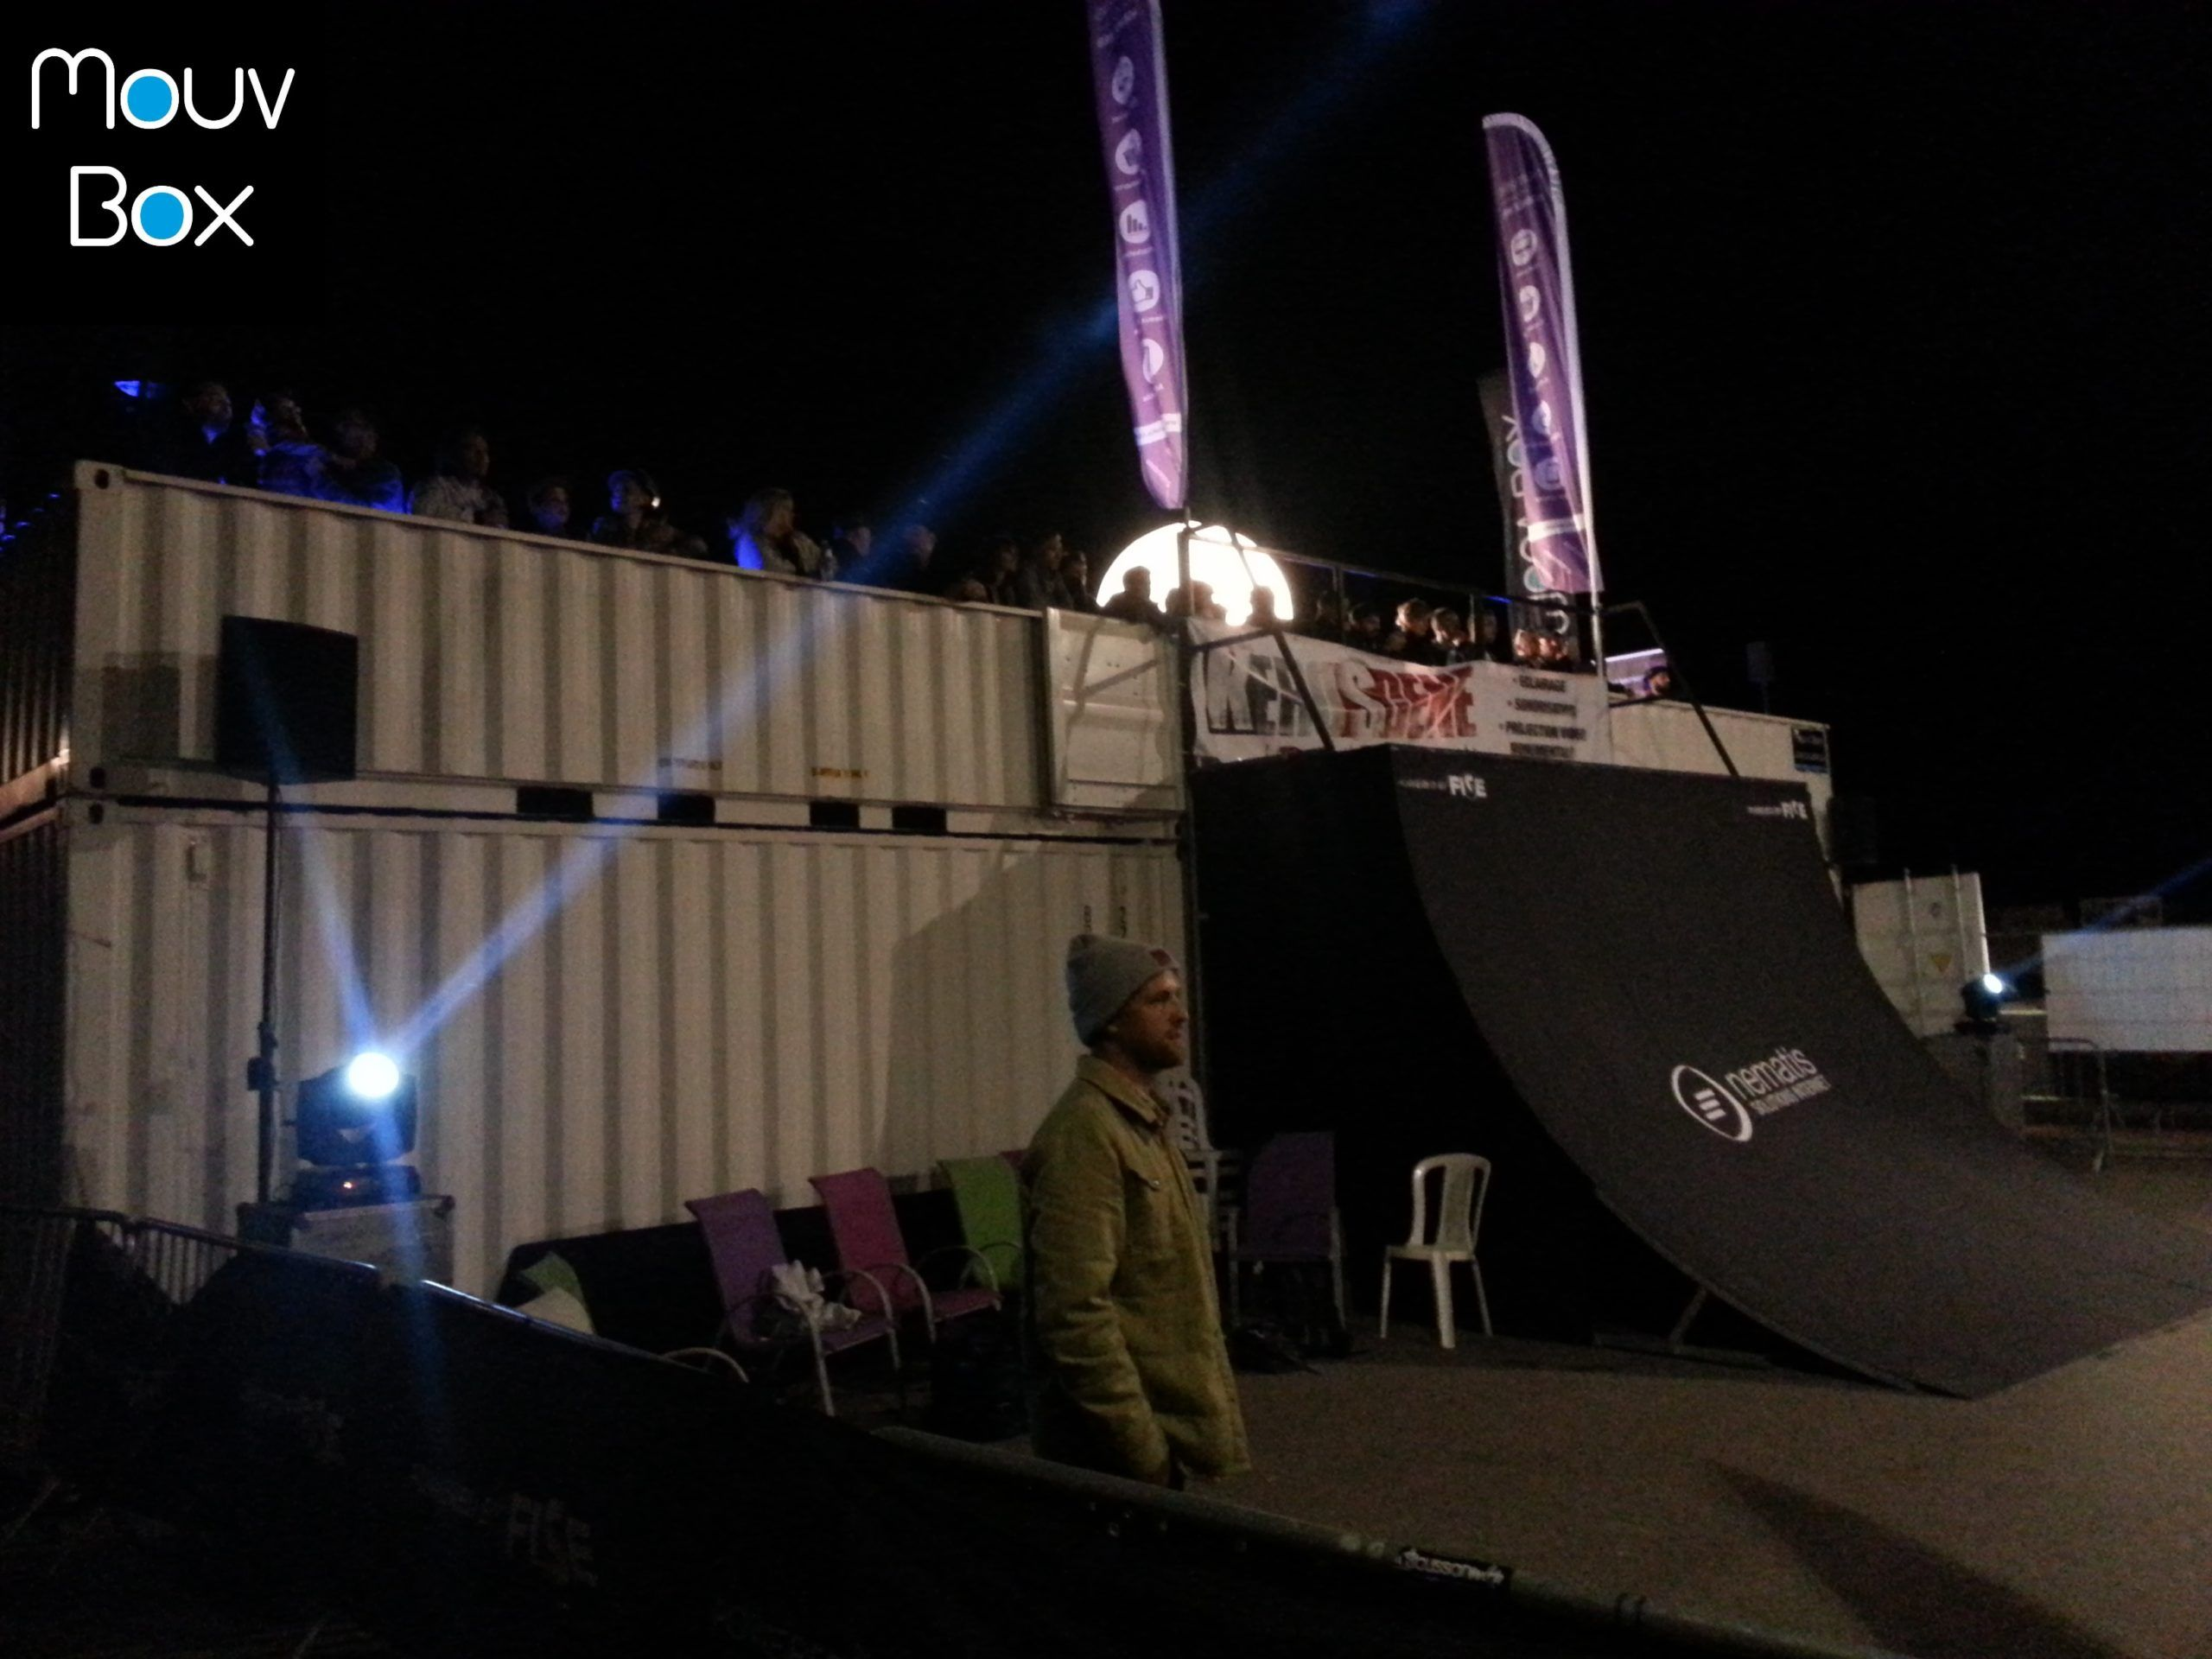 container-conteneur-20-evenement-wheelz-festival-fise-www.mouvbow-france.com